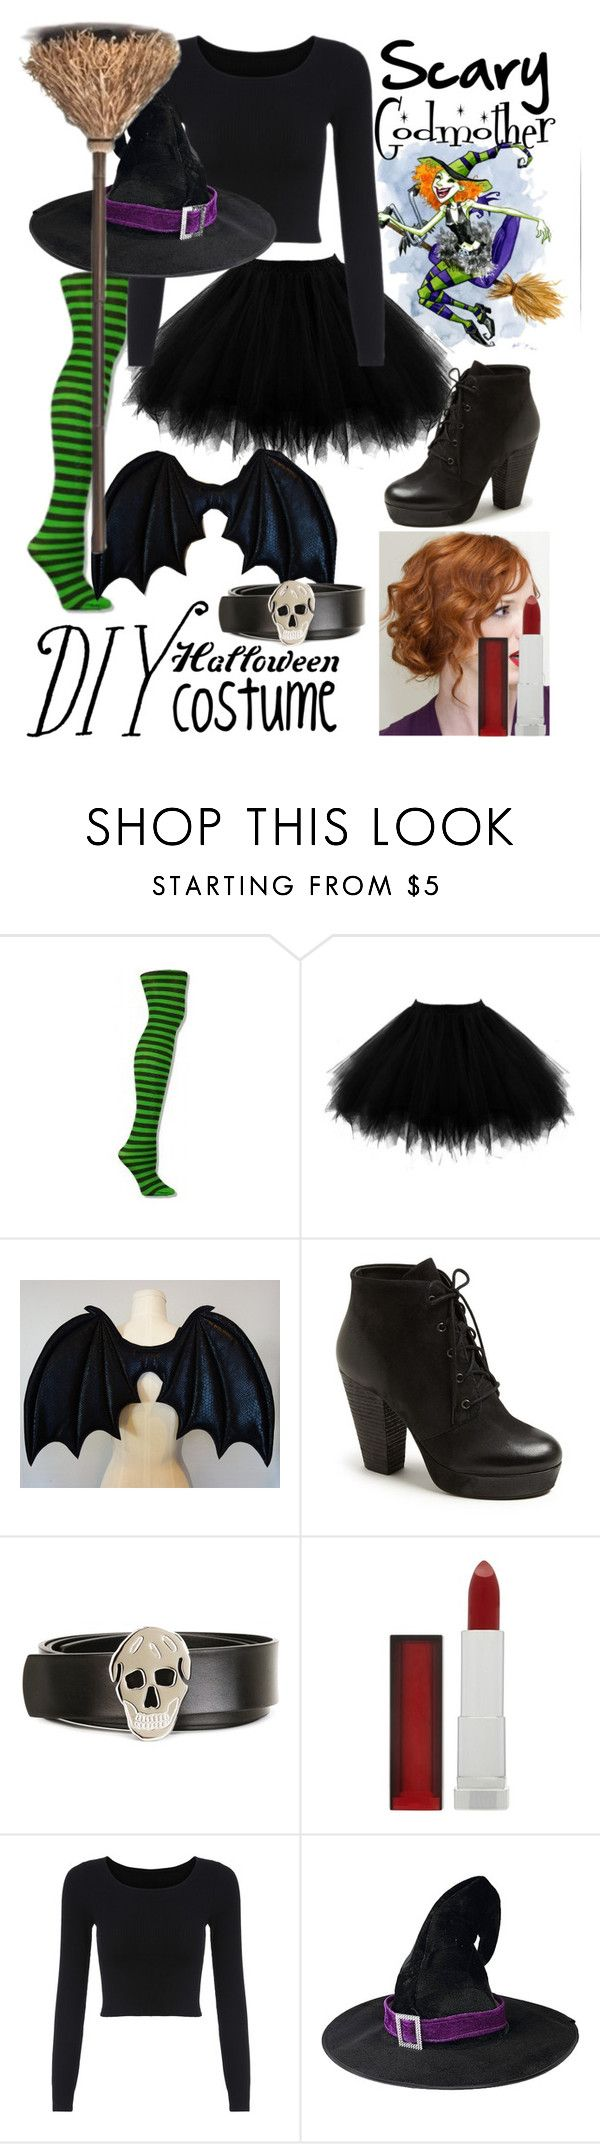 """Scary godmother DIY"" by ur-simply-unique ❤ liked on Polyvore featuring Steve Madden, Alexander McQueen, Maybelline, halloweencostume and DIYHalloween"